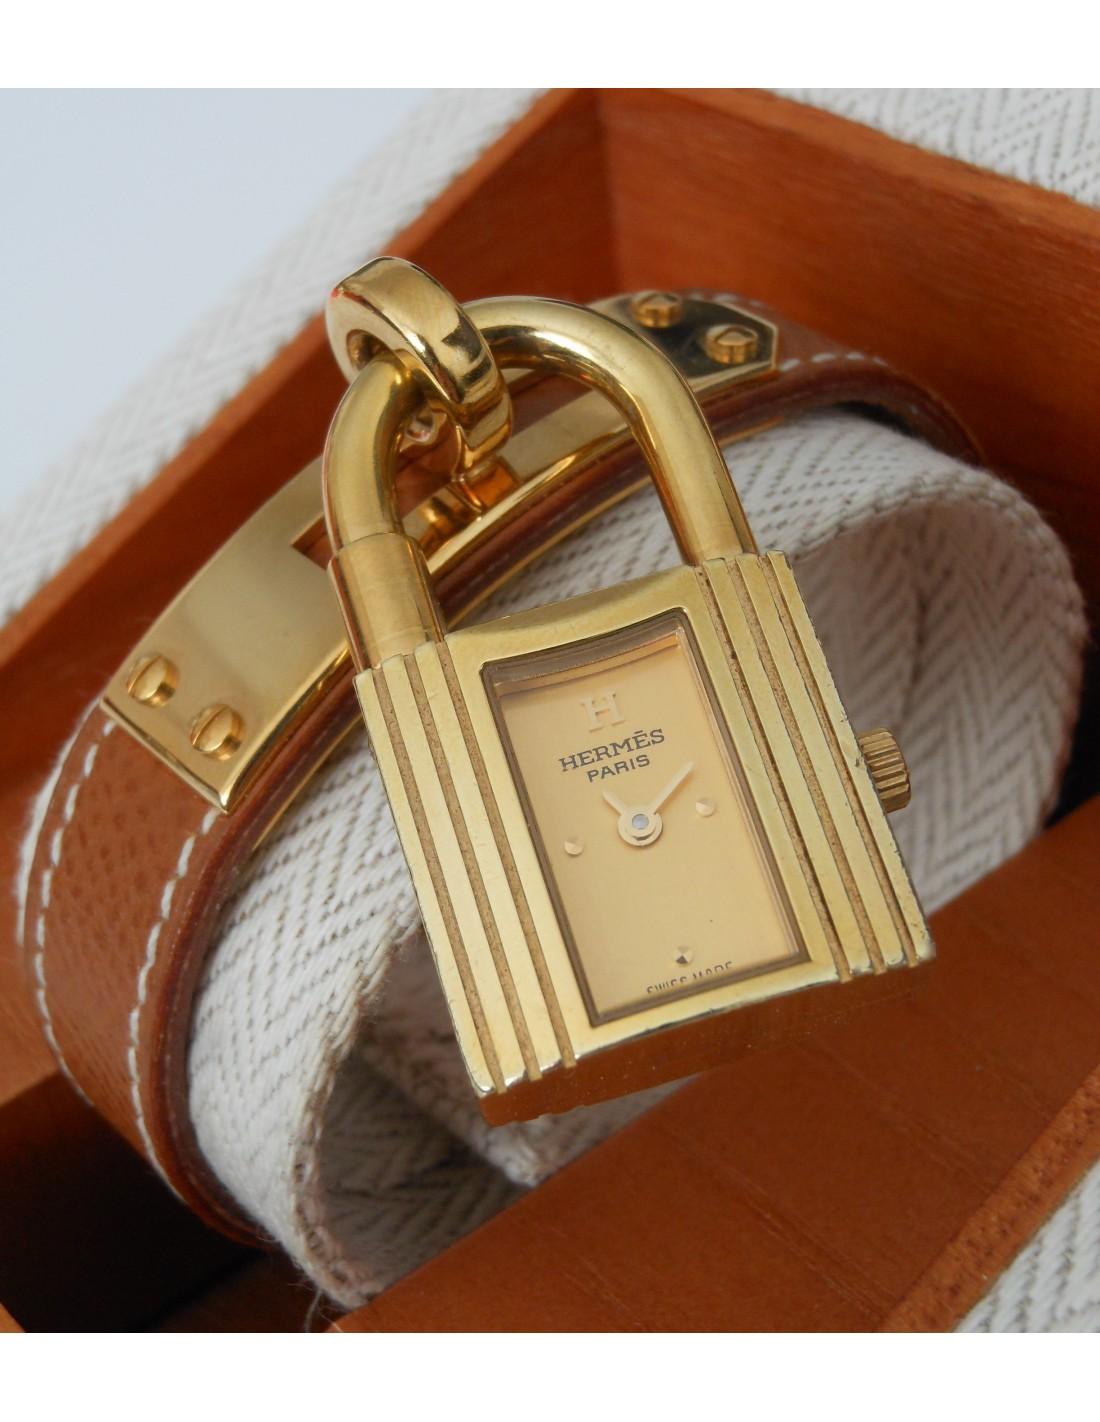 Montre hermes kelly prix neuf for Container prix neuf